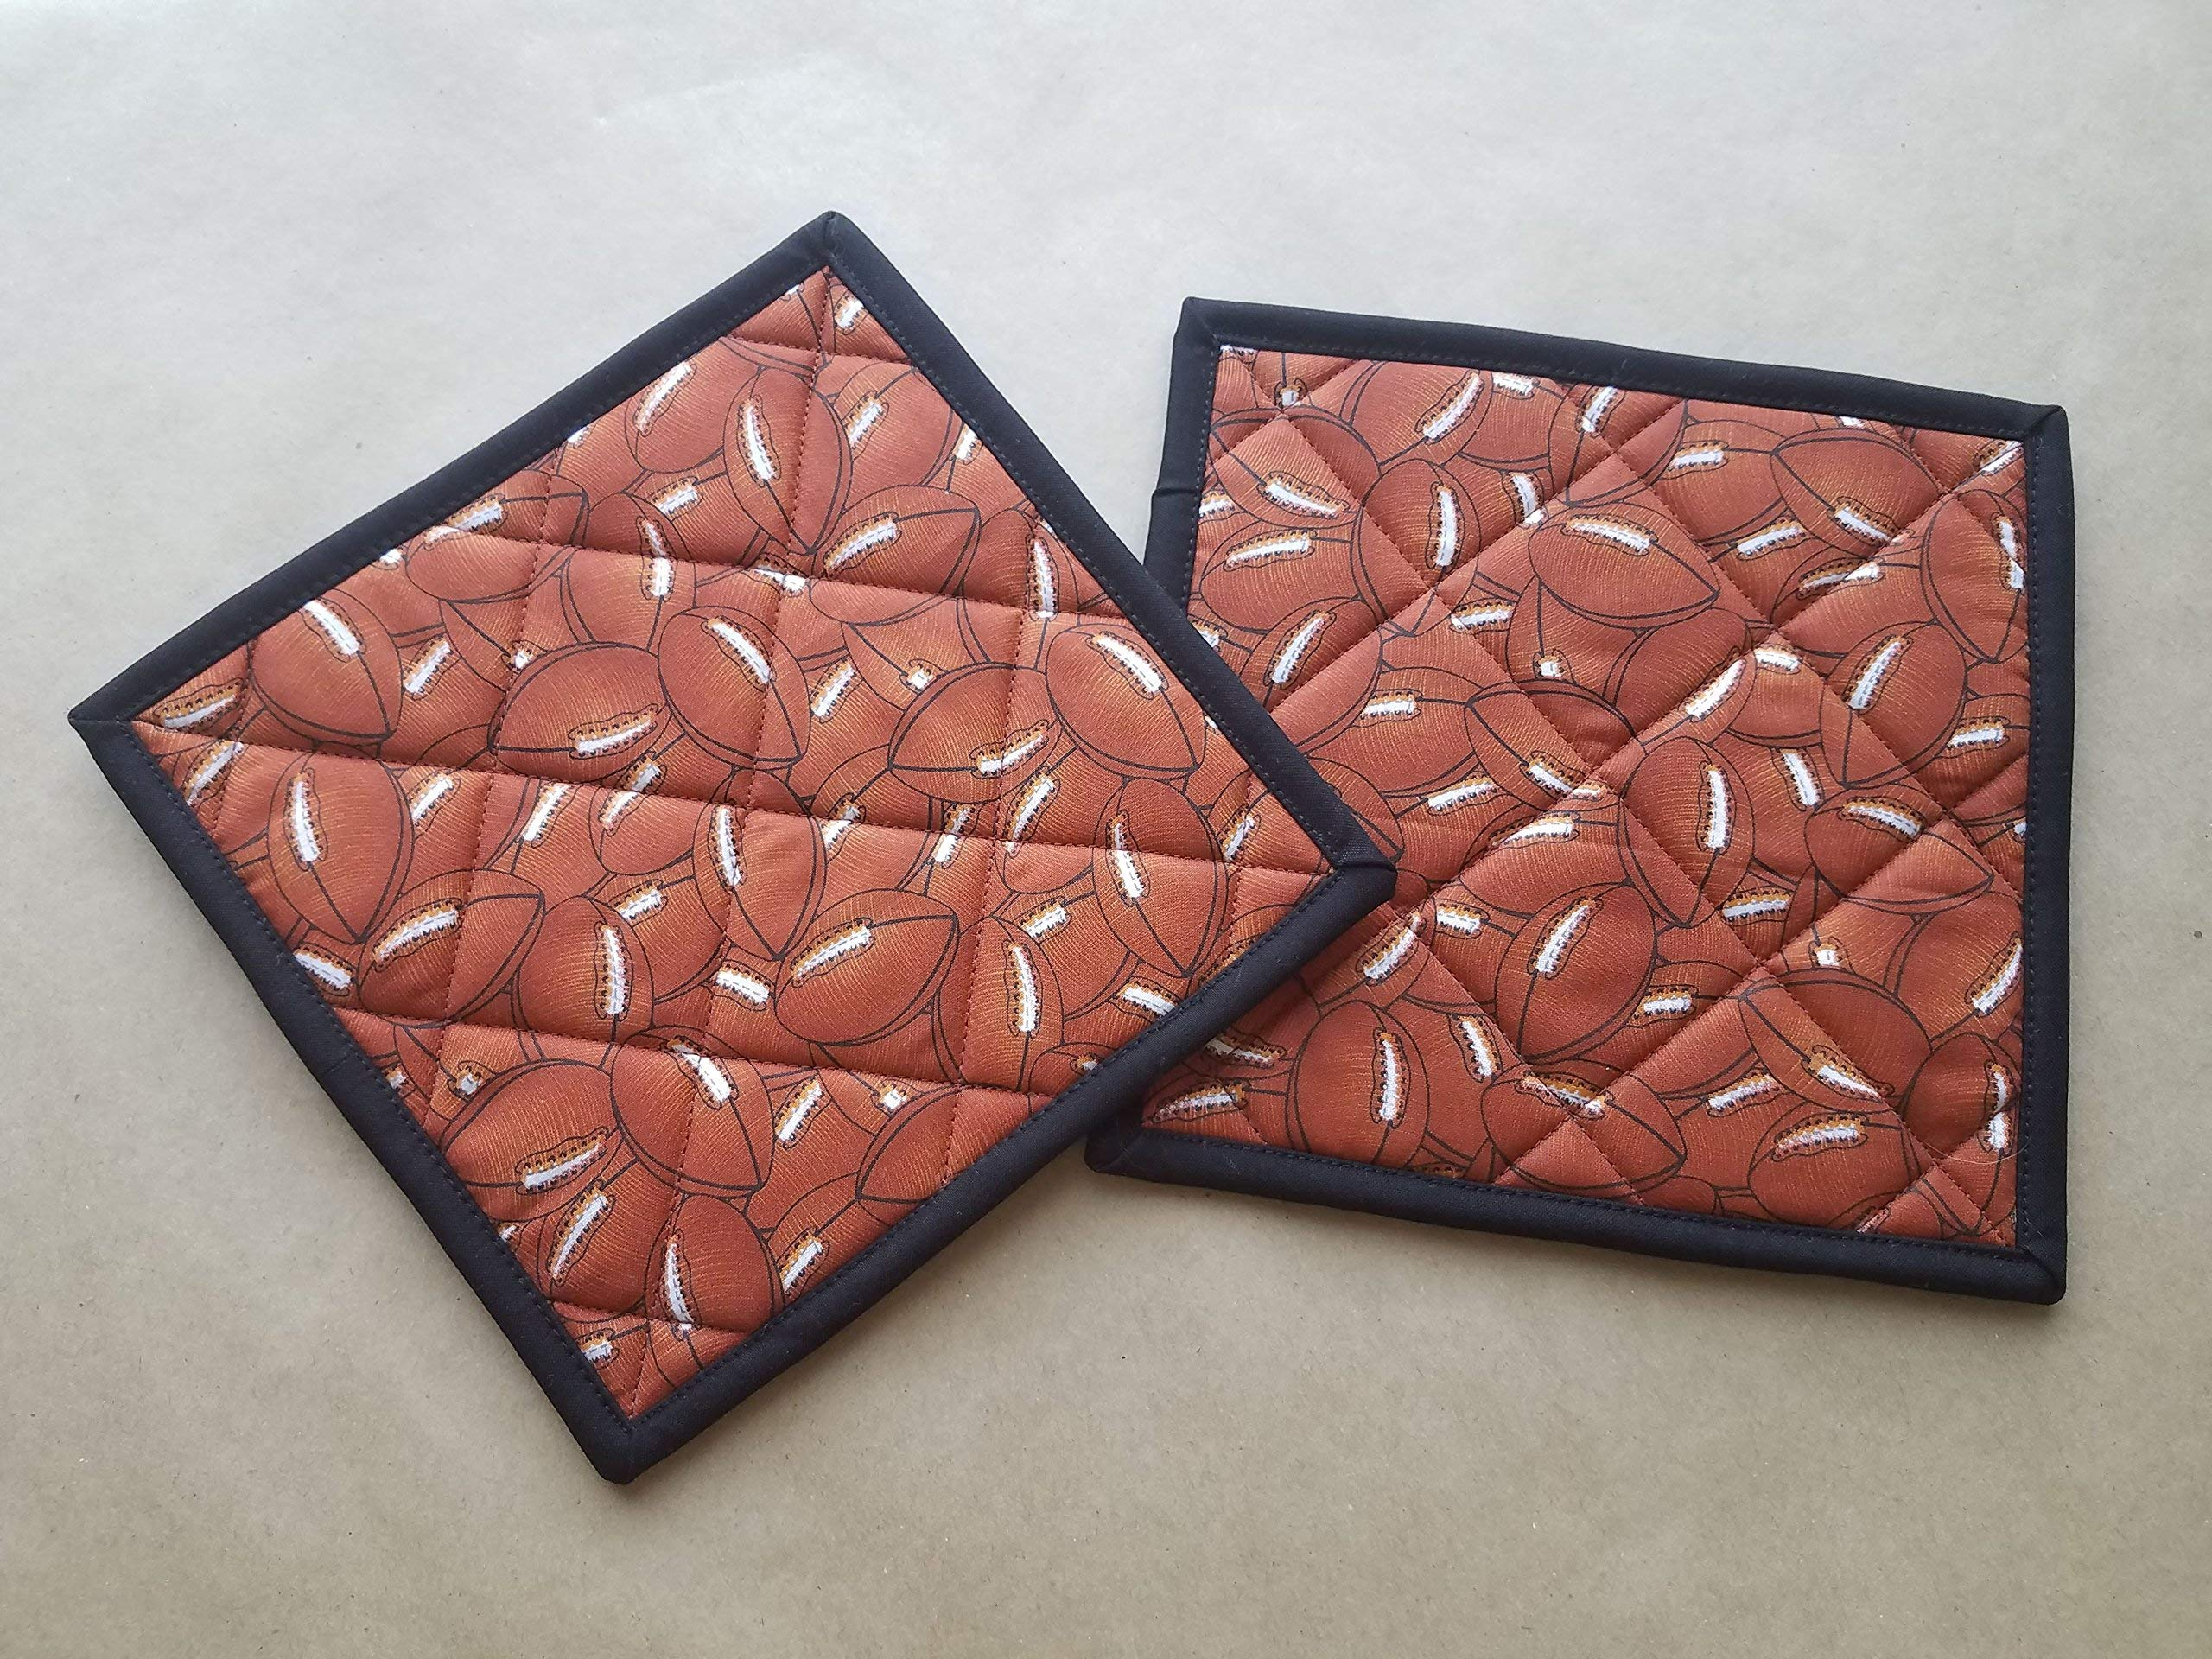 Football Quilted Potholders, Sports Kitchen Linens, FootBalls Set of 2 Insulated Trivets, Hot Pads, College Football Potholders, Man Cave Gifts, Coach Gift, Football Lover Gift Ideas